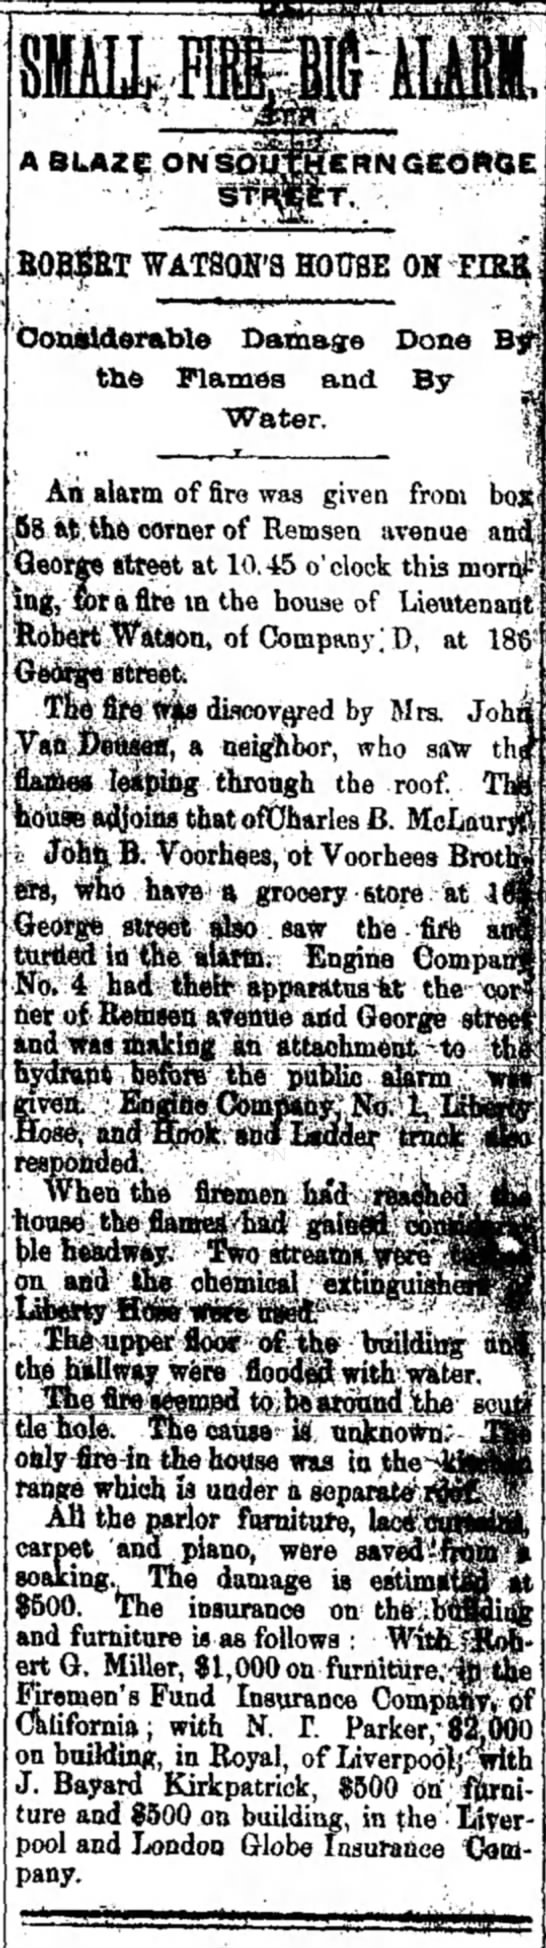 John Voorhees, grocery - turns in alarm for fire along with others - An alarm of fire was given from i8 ftfe the...